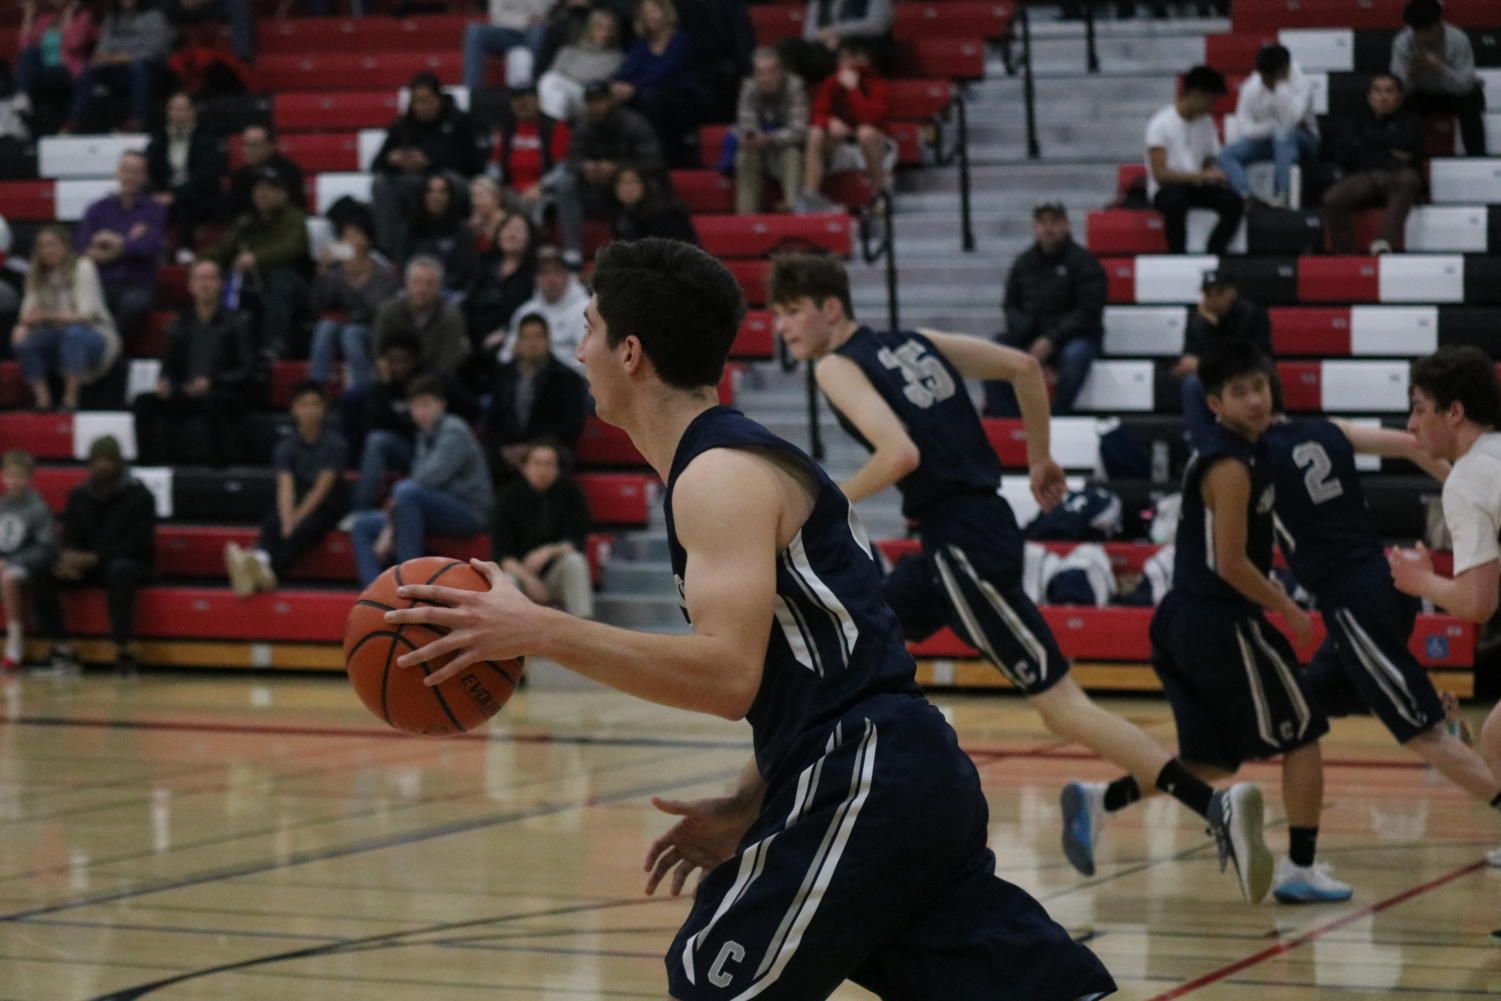 David Bedrosian, a senior and point forward, takes the ball down the court.